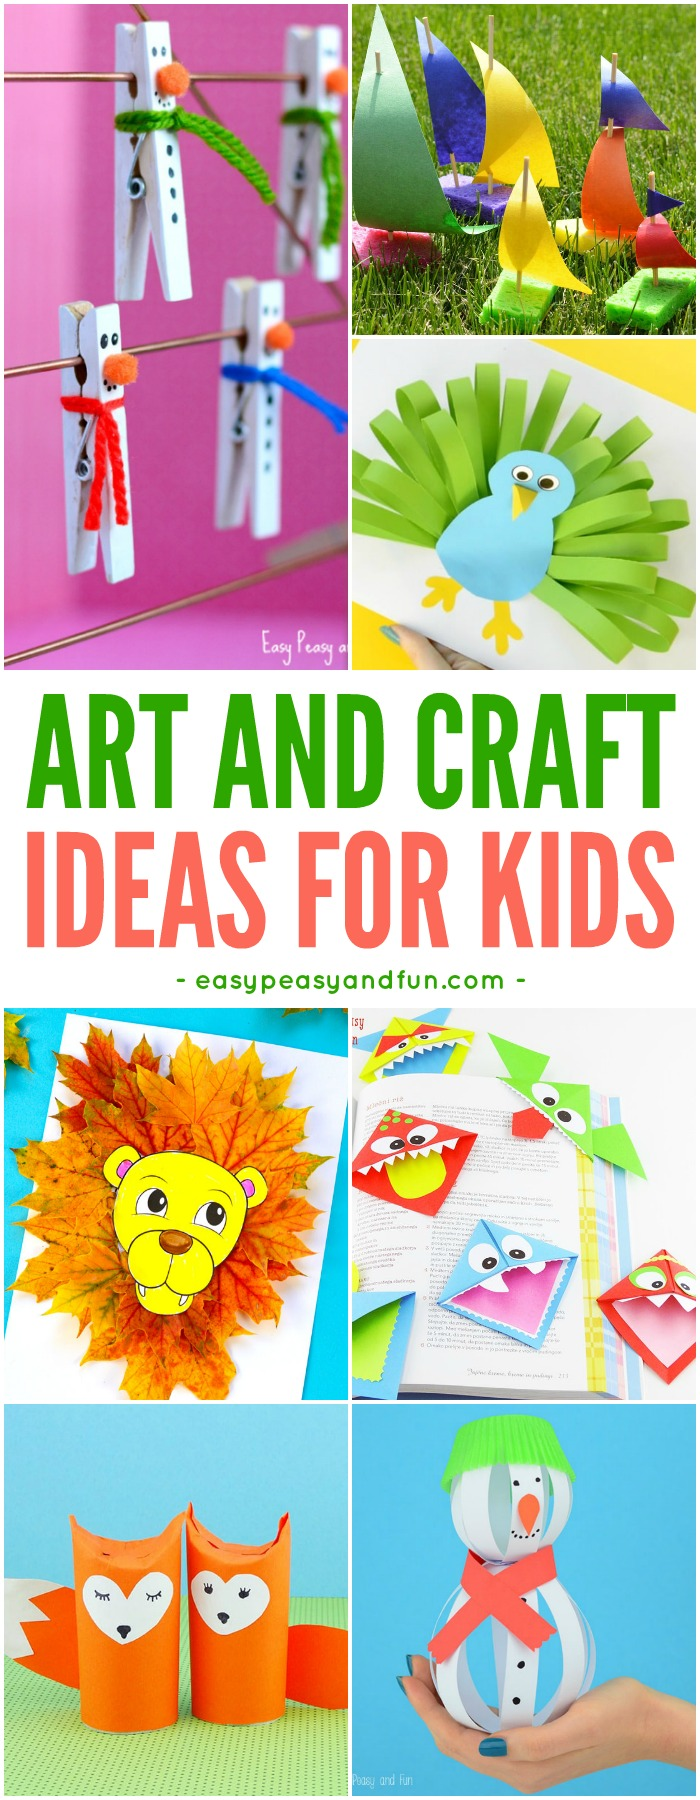 Art And Craft For Preschool Crafts For Kids Tons Of Art And Craft Ideas For Kids To Make